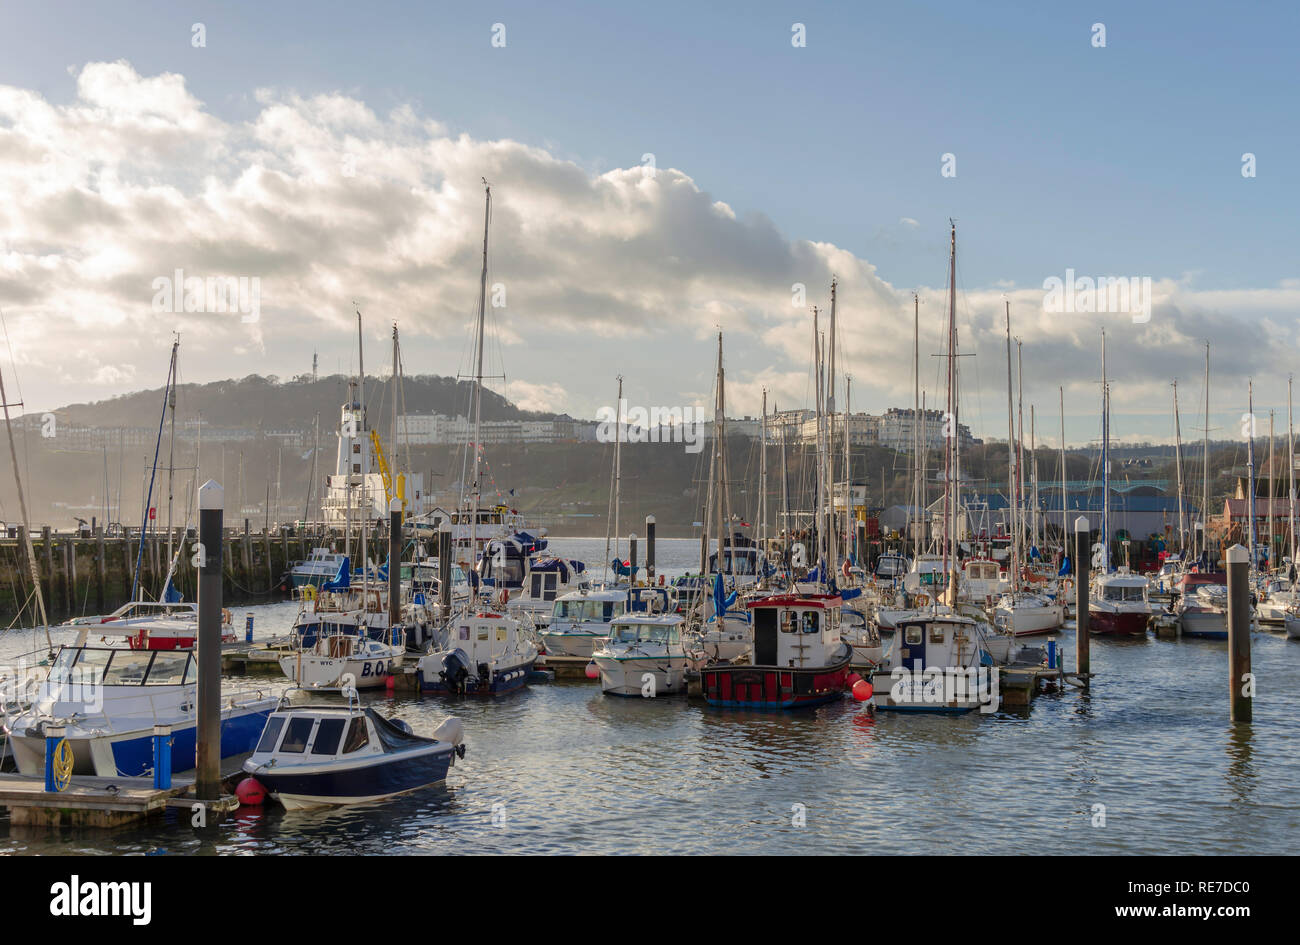 The harbour and marina at Scarborough.  The various boats are moored together and a wharf lies beyond. A lighthouse is to one side and hotels top the  - Stock Image